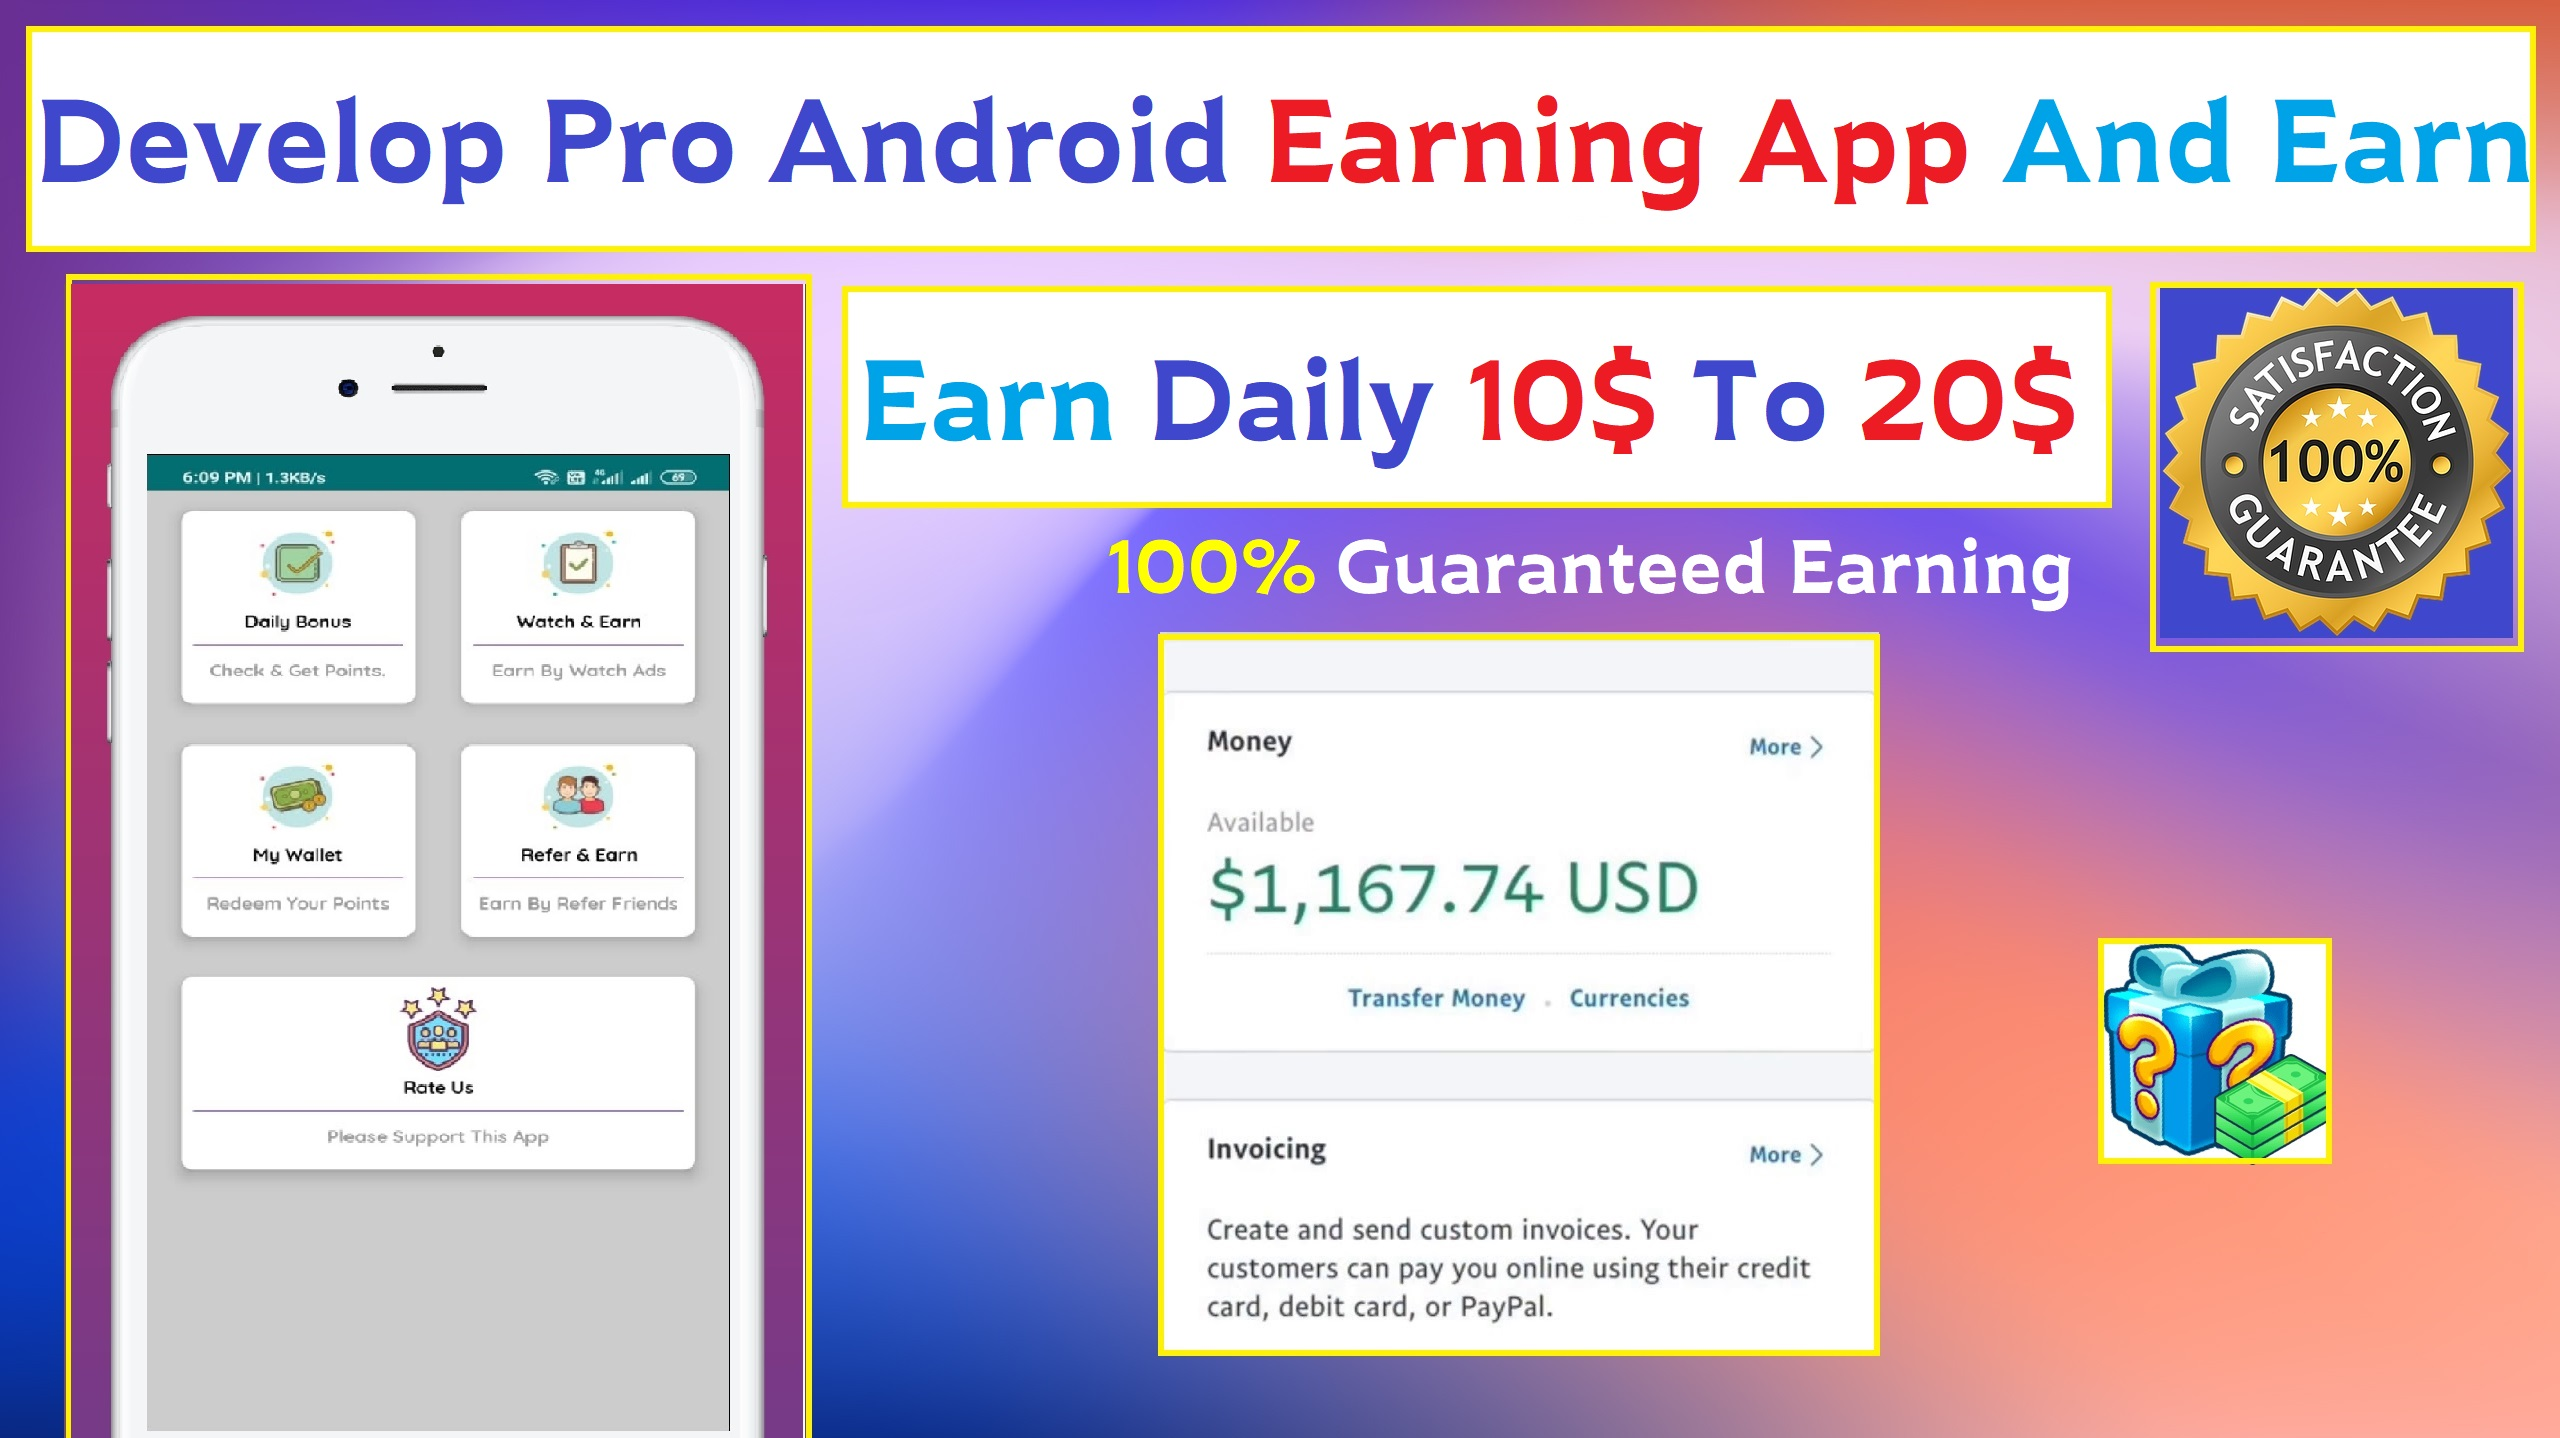 Develop Pro Earning App And Guaranteed Earning